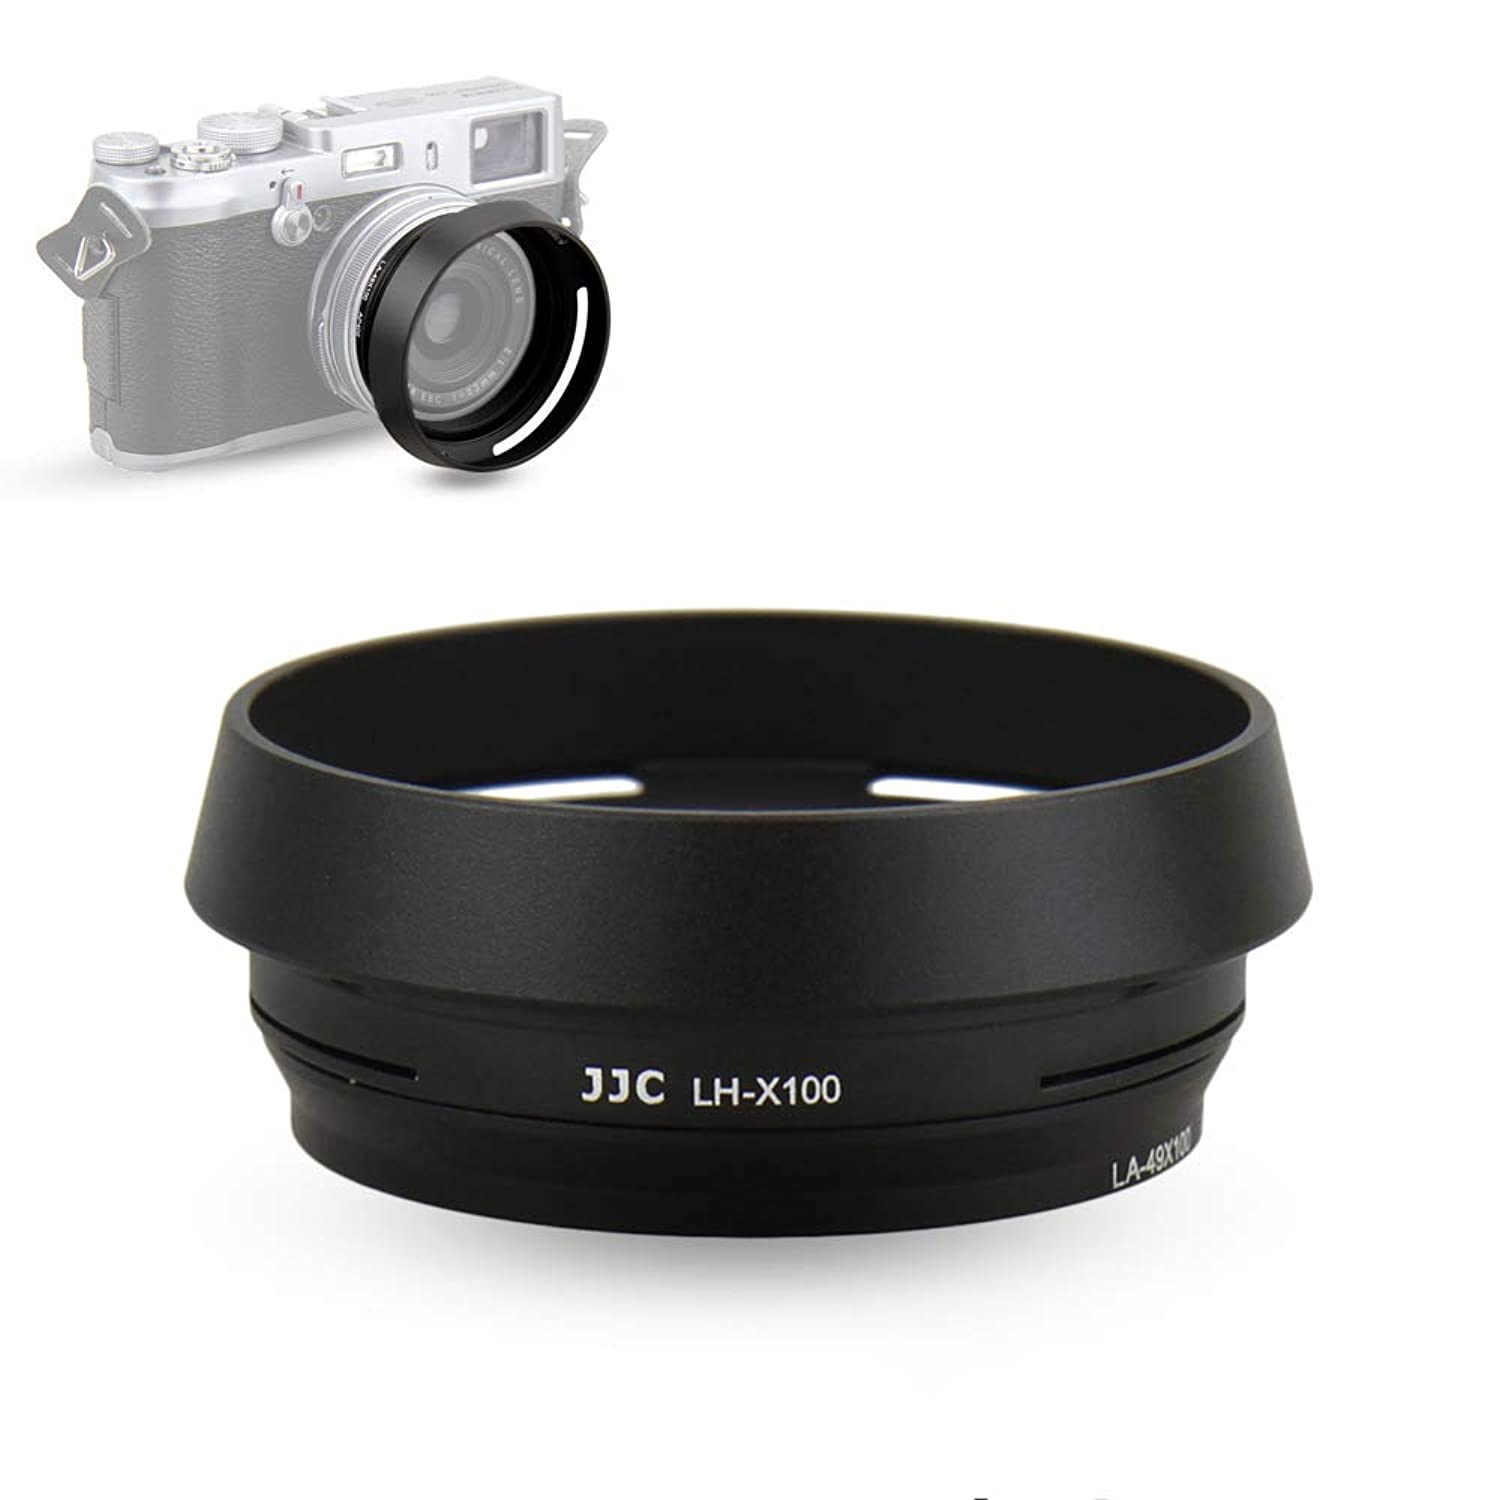 Jjc Lh X100 Lens Hood Sun Shade With 49mm Filter Adapter Ring For Fuji Fujifilm X100v X100f X100t X100s X100 Digital Camera Metal Material And Black Color Walmart Com Walmart Com